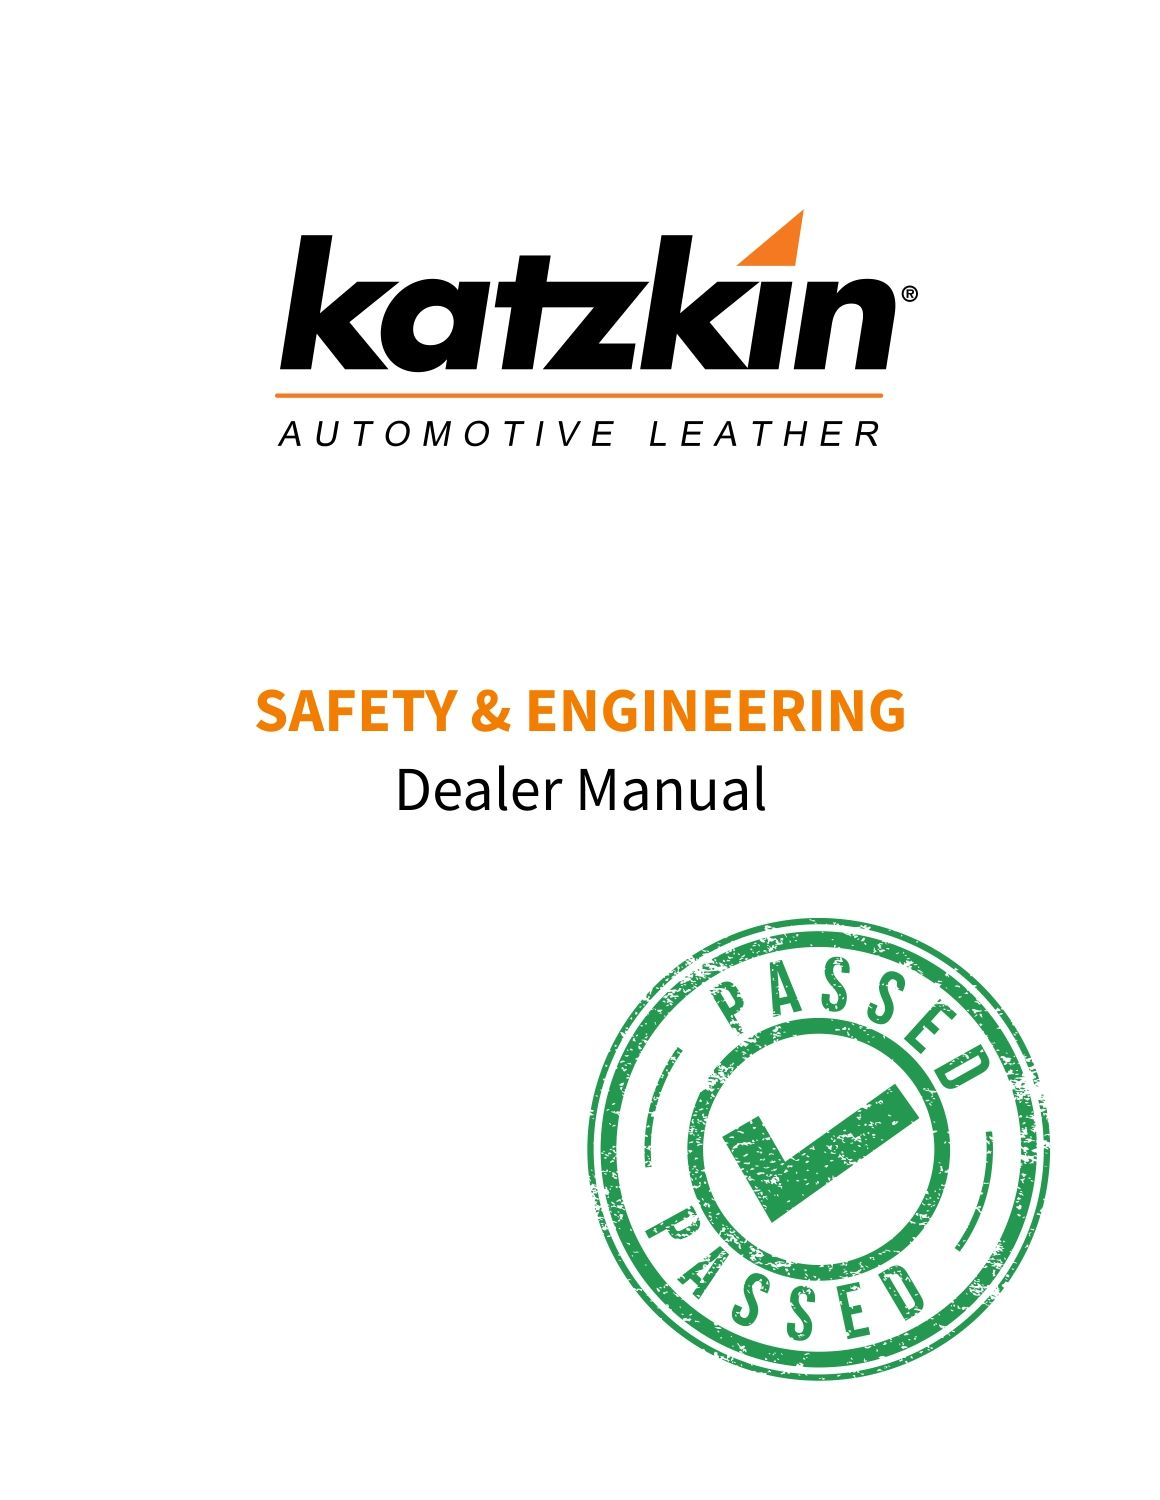 Safety & Engineering Dealer Manual